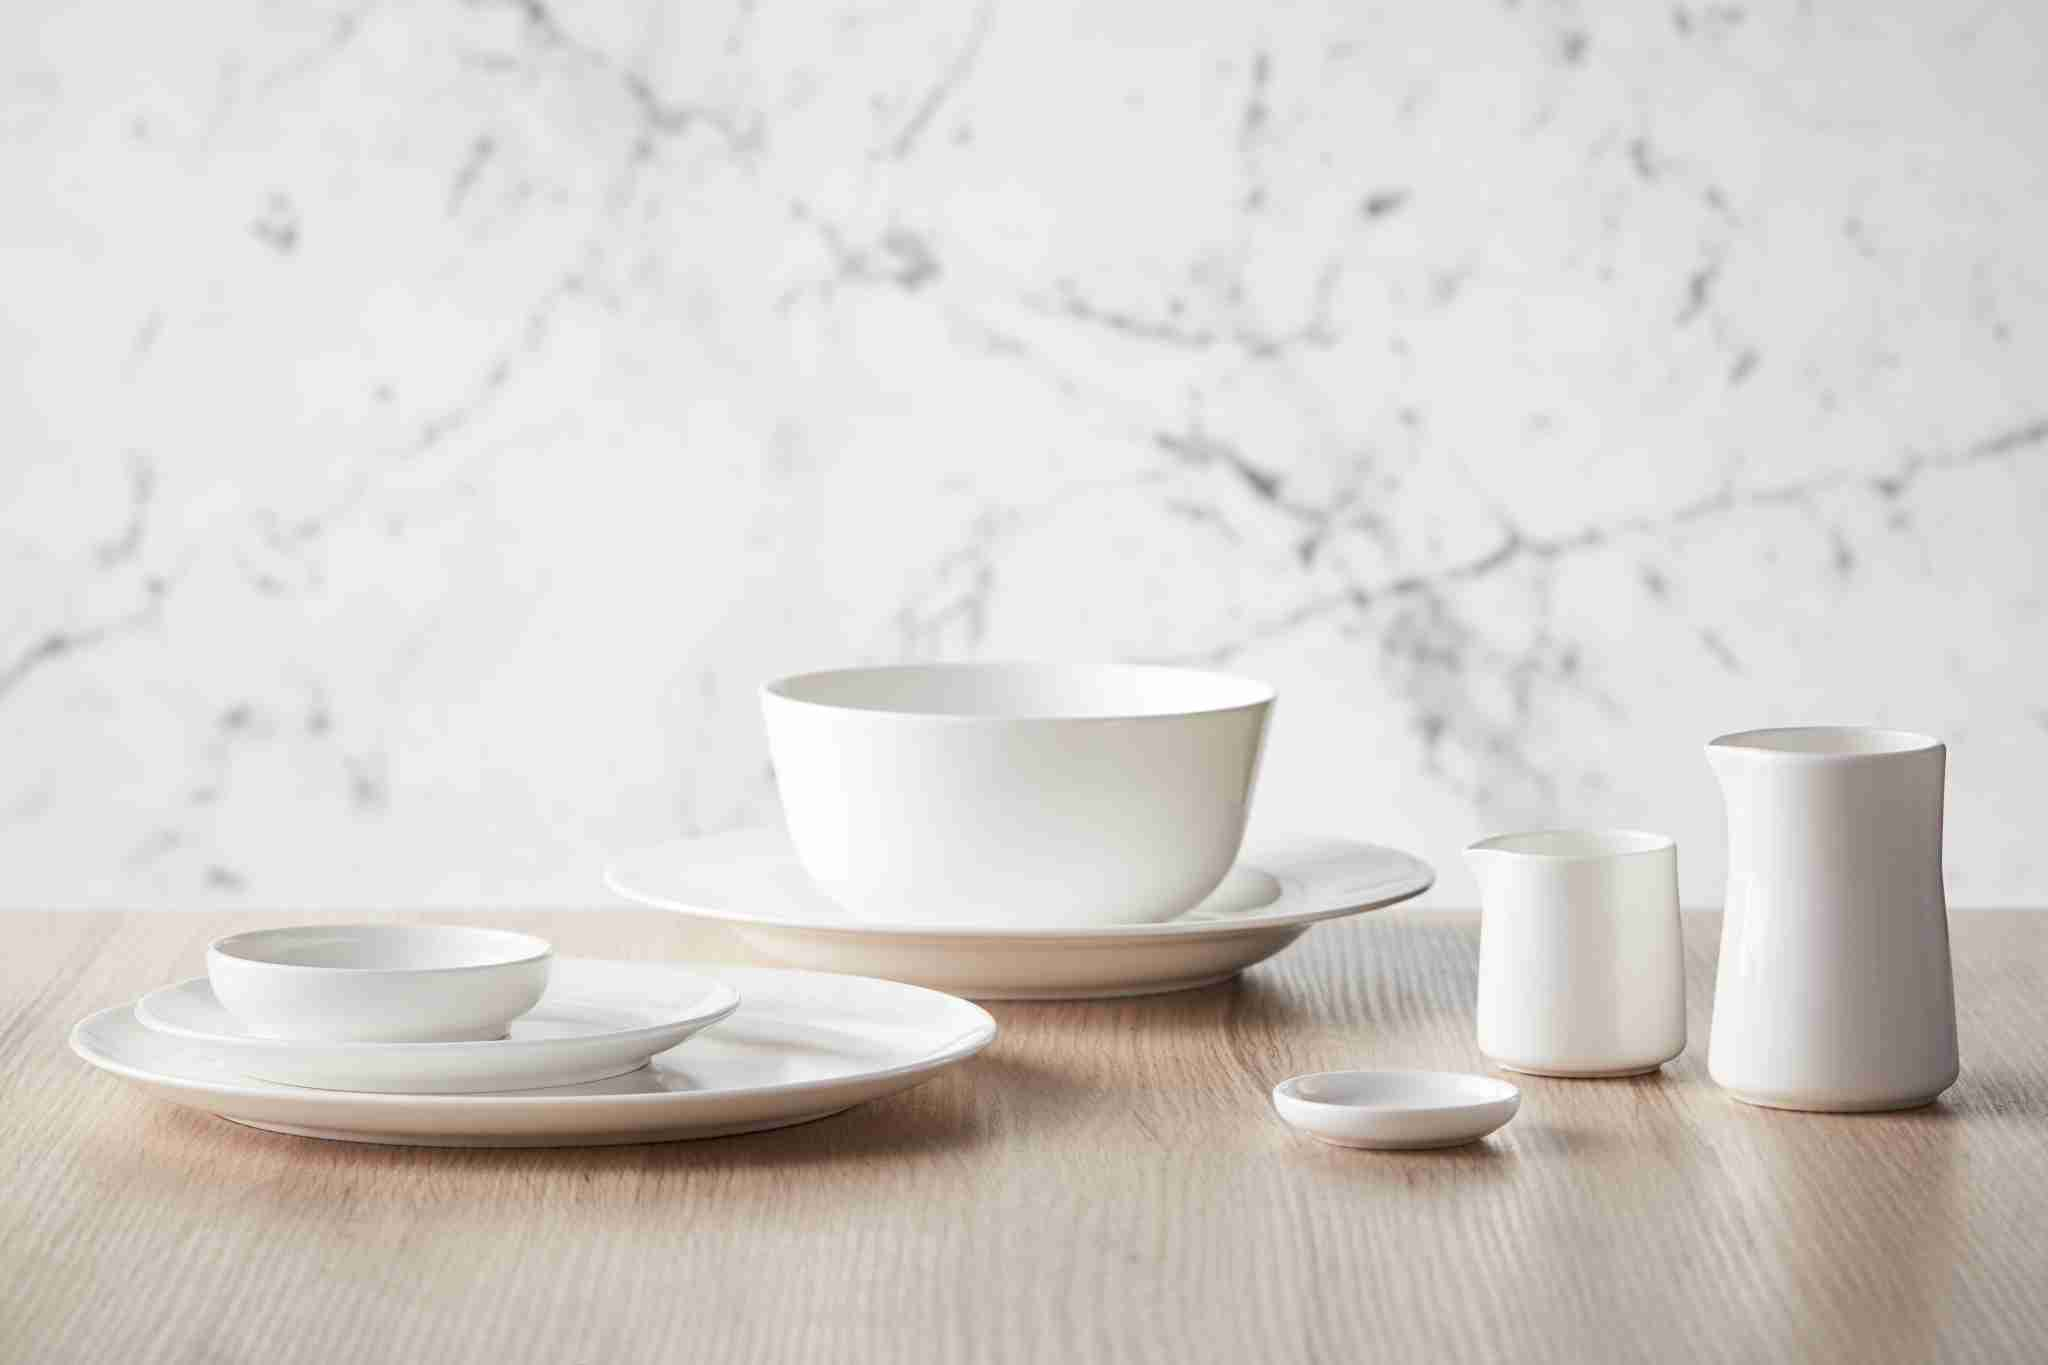 Qantas asked designer David Caon to create a new, lighter line of serviceware with Noritake. Image courtesy of Qantas.